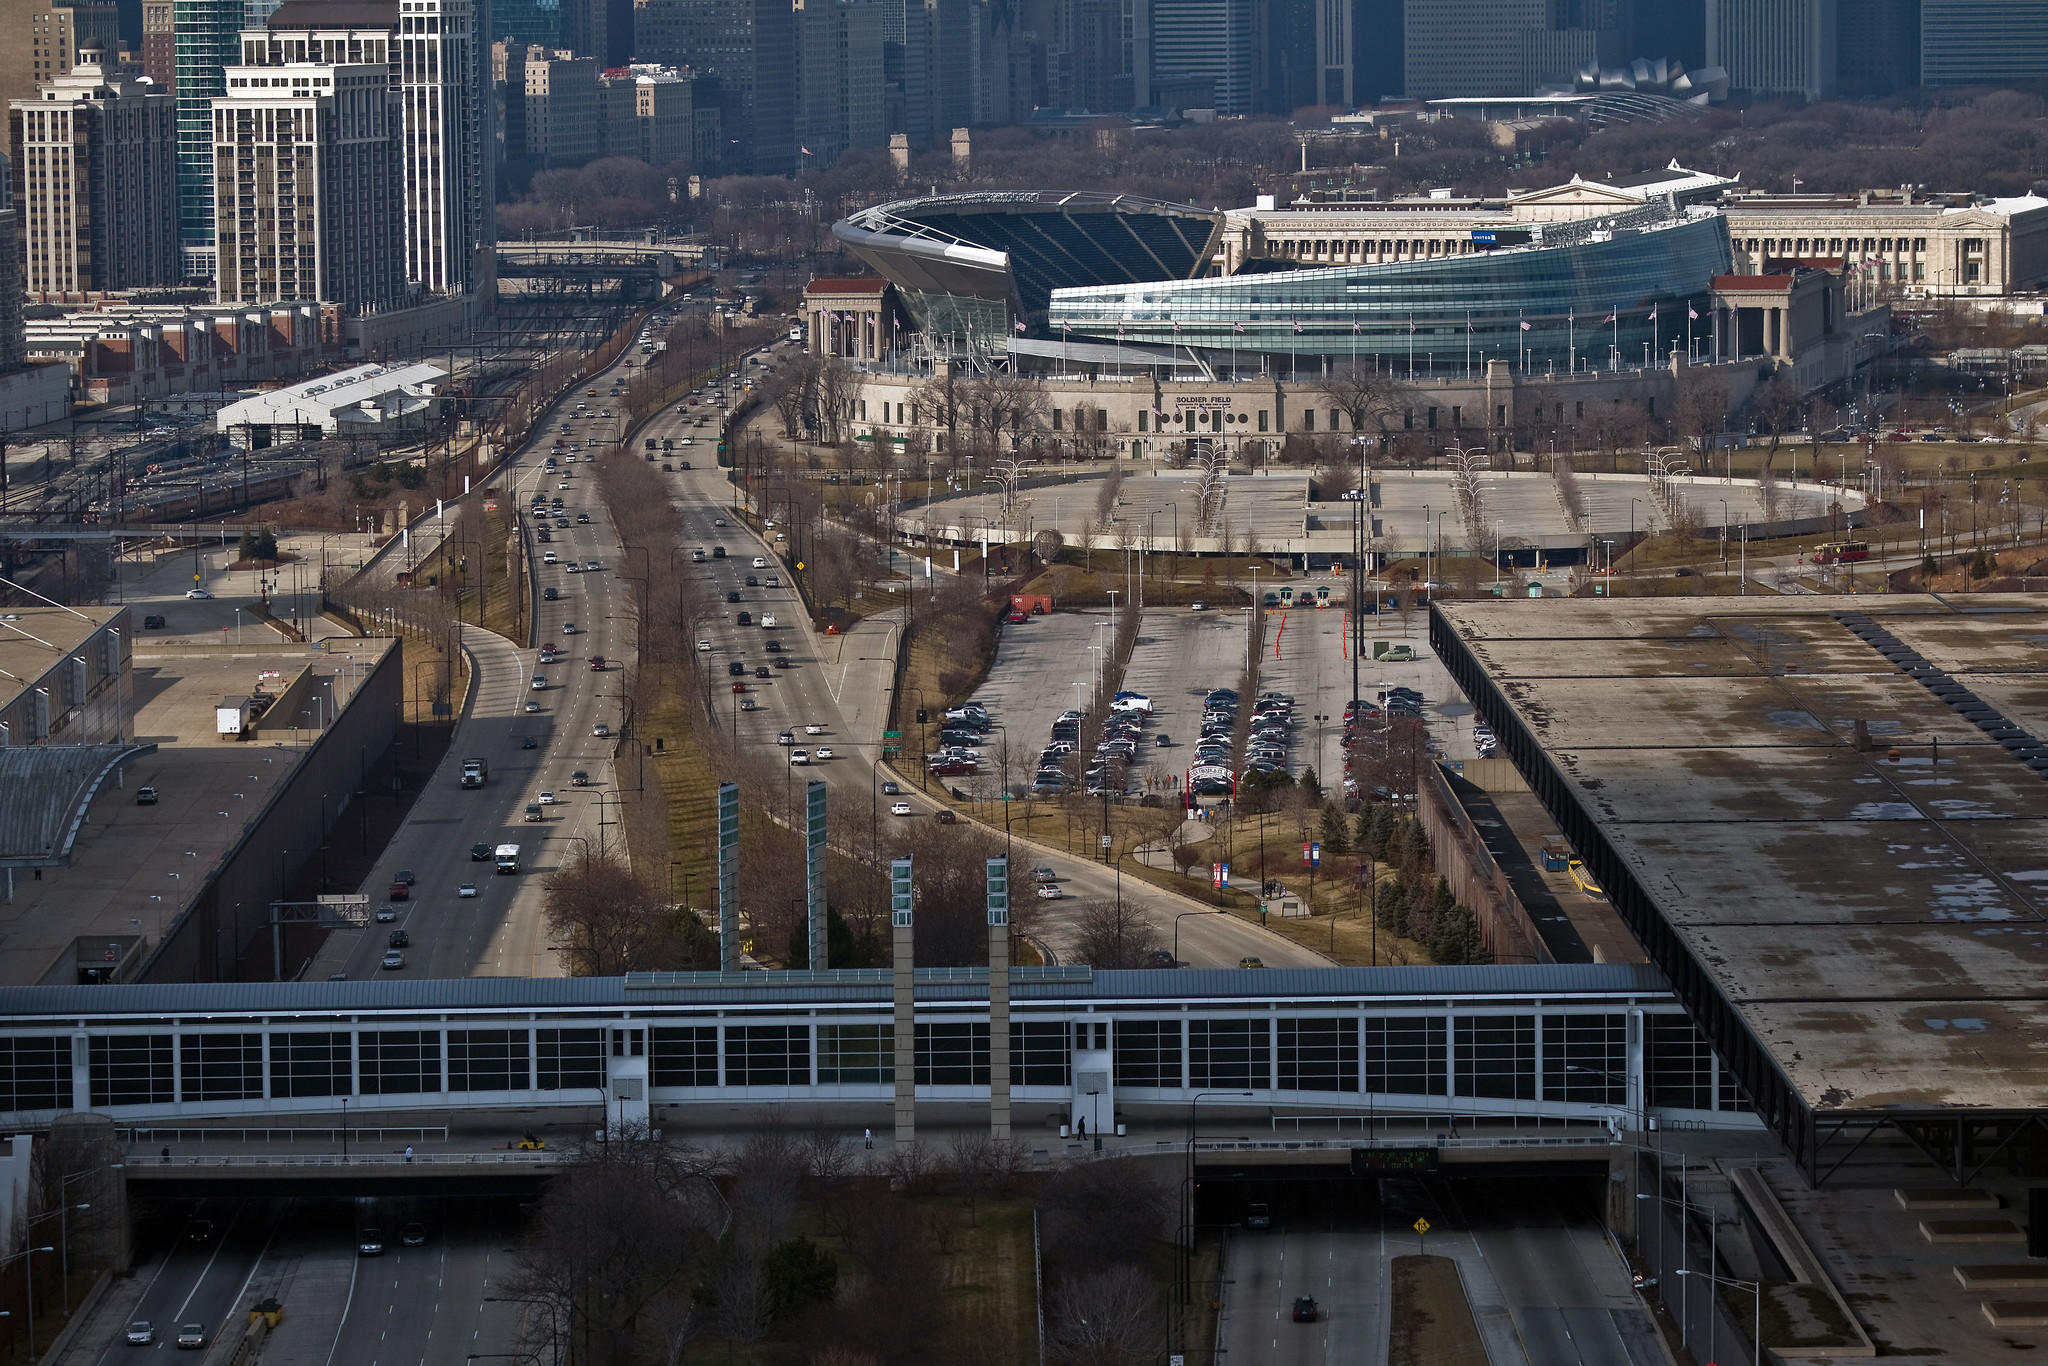 The parking lots between Soldier Field and McCormick Place are the location proposed for a Lucas Cultural Museum.